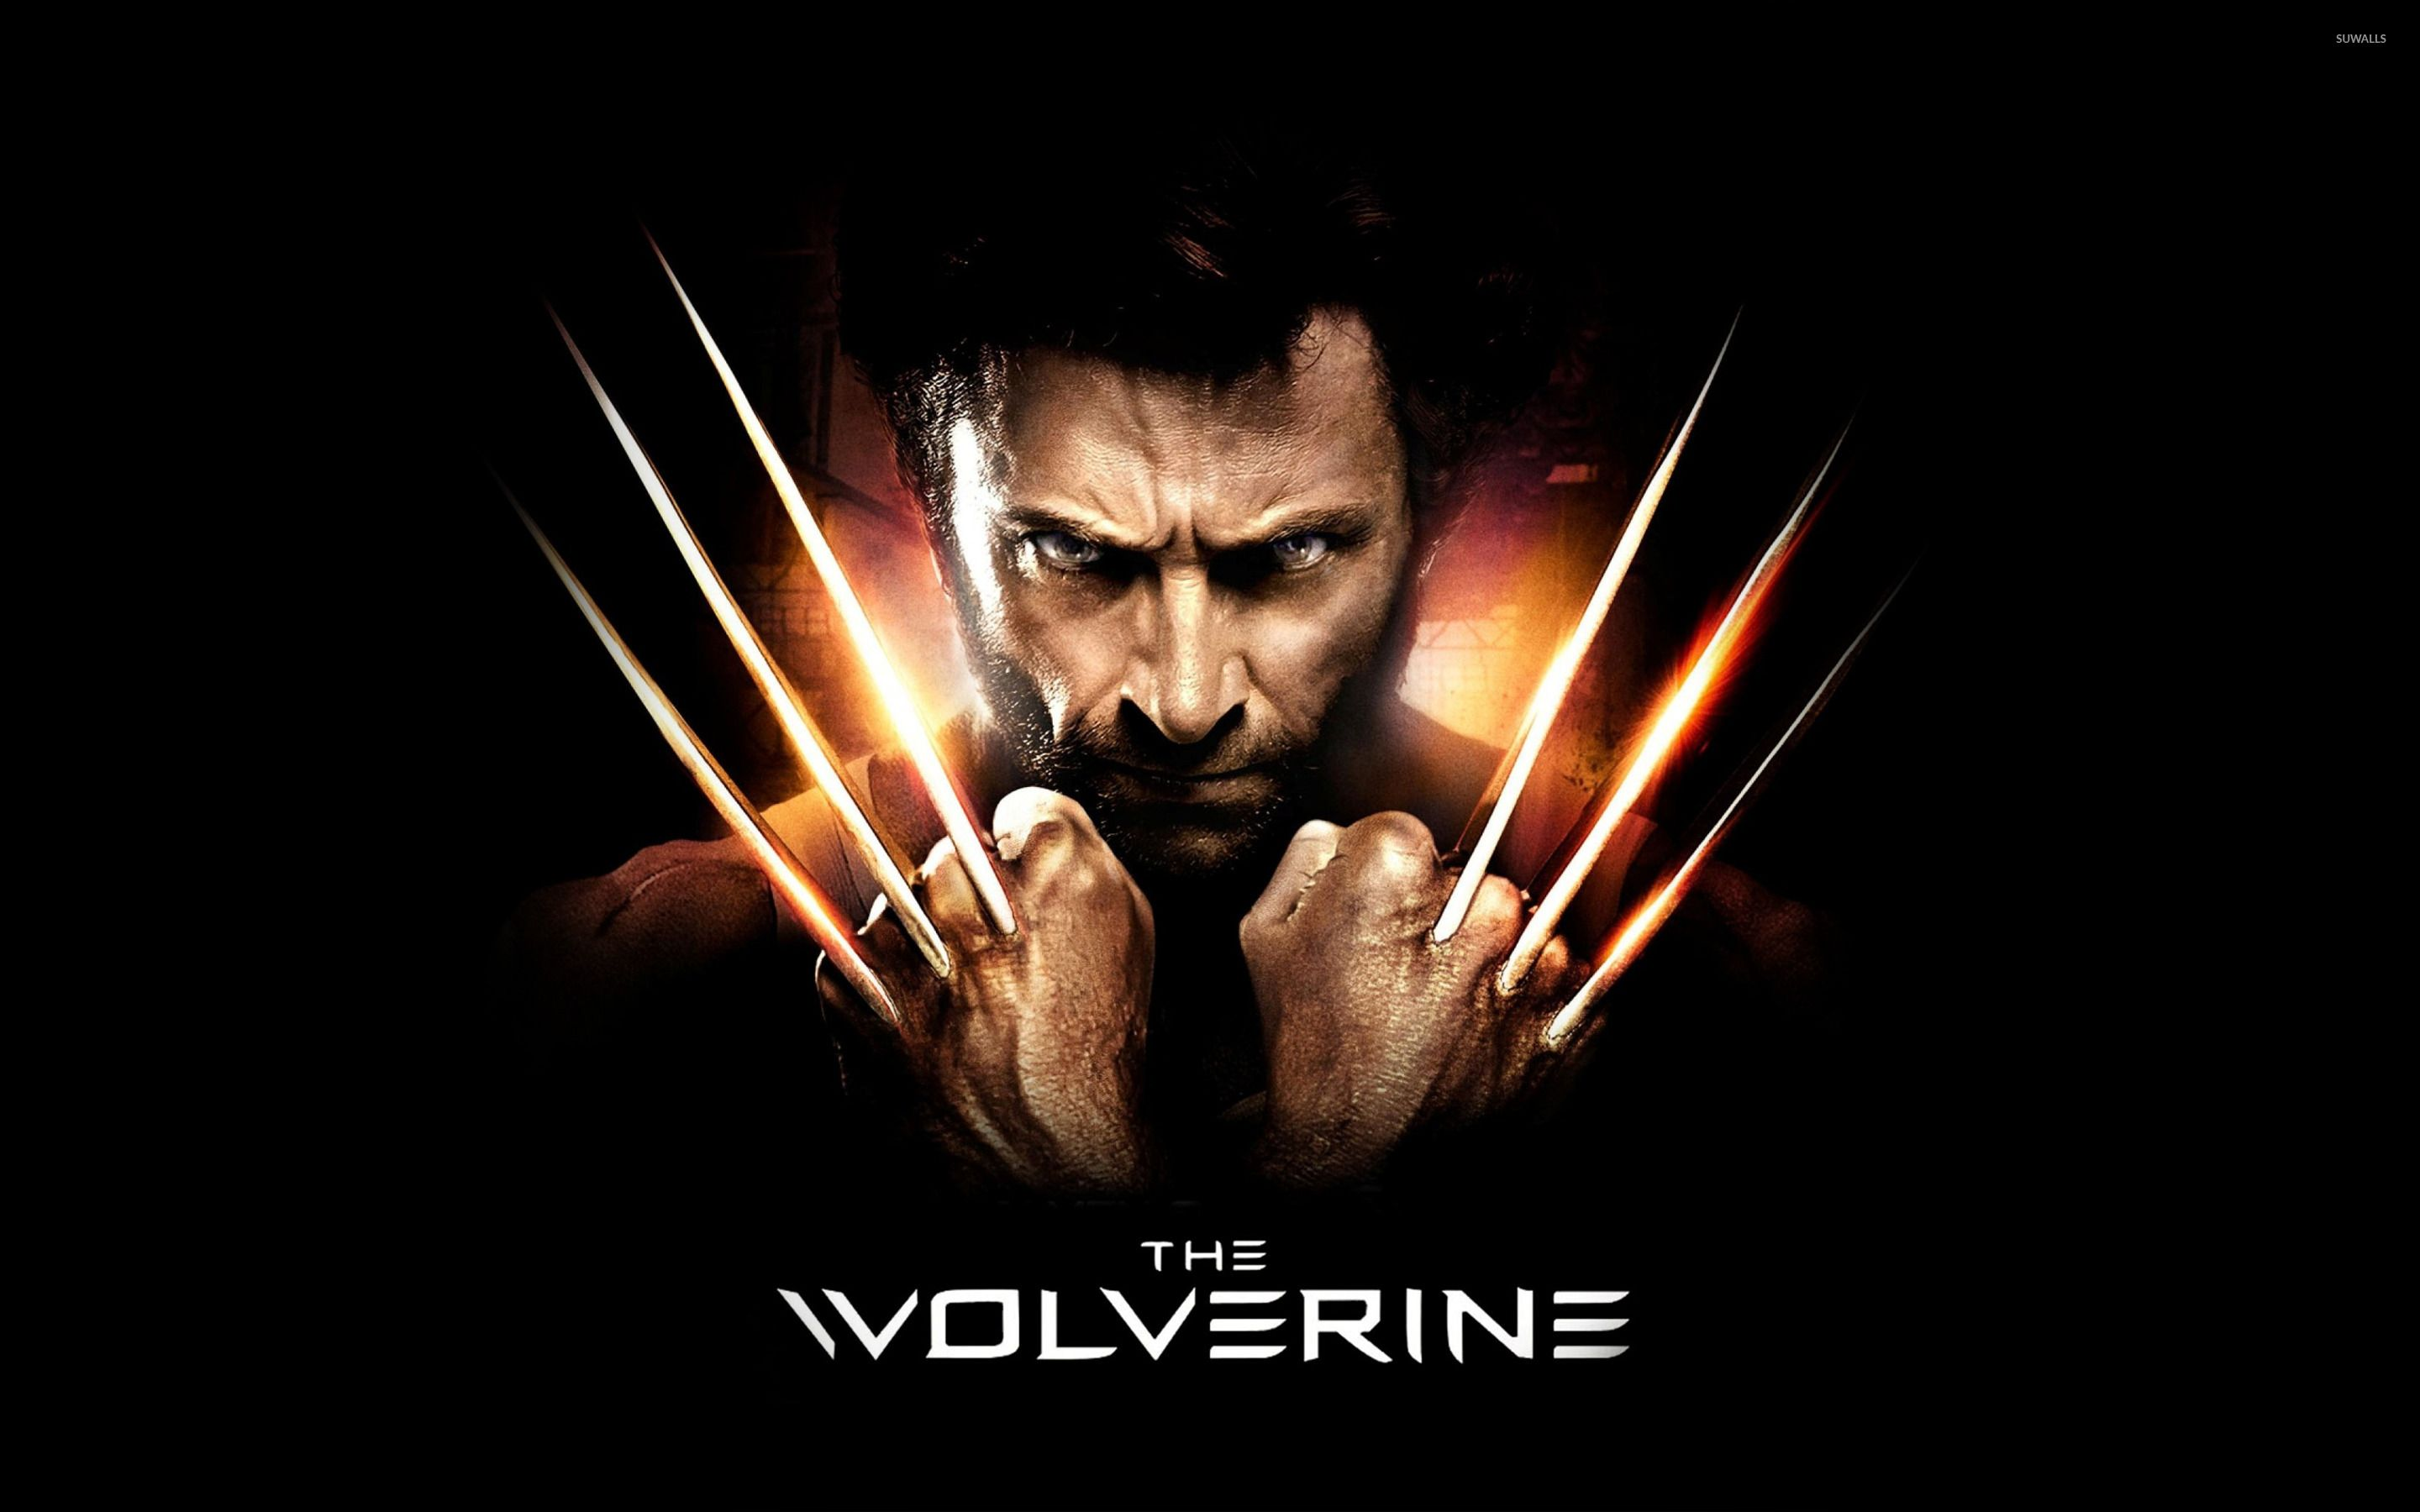 2880x1800 Logan - The Wolverine wallpaper - Movie wallpapers - #22525